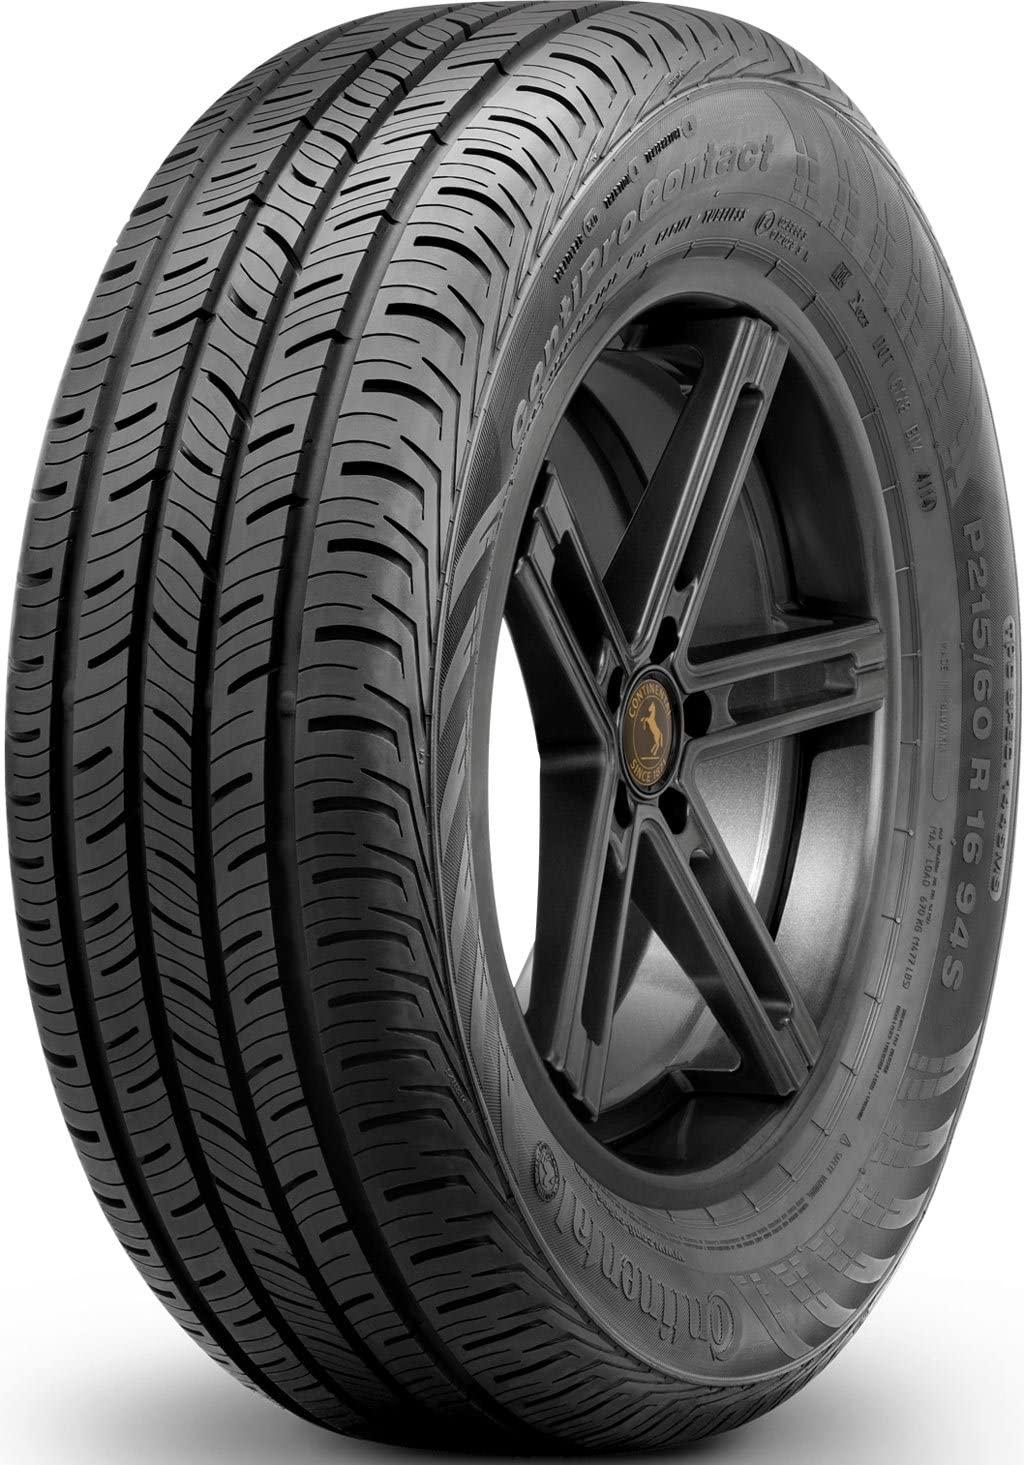 235//45-18 Continental ContiProContact All Season Touring Tire 500AAA 94H 2354518